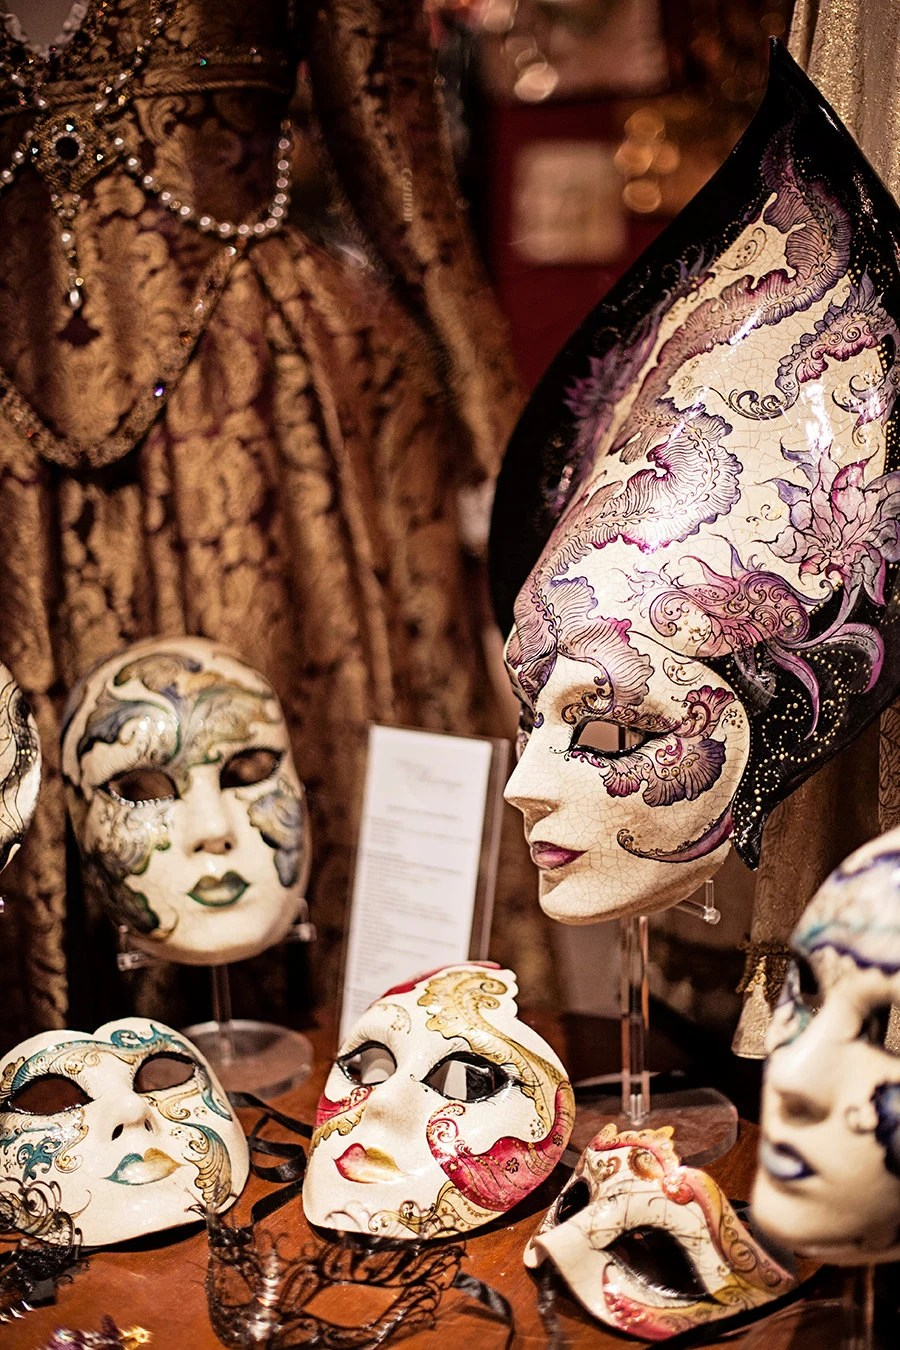 Venice, Masks, Costume, Carnival, Italy, Travel, Black and White, Wall Art, Gift Idea, Home Decor, fPOE, Fine Art Photography Image, - janepackard